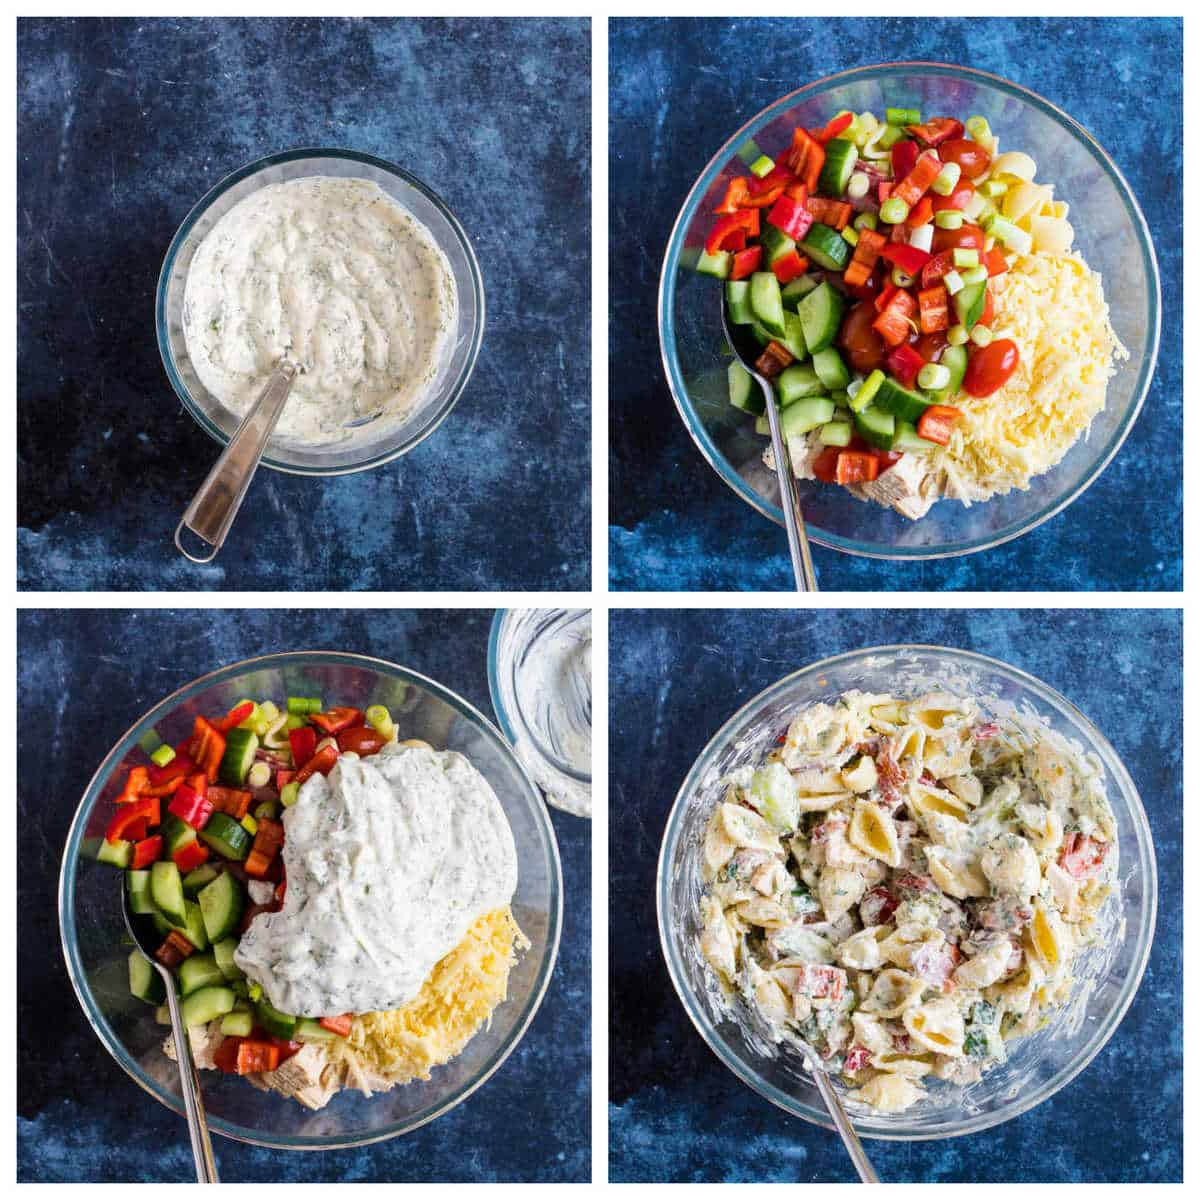 Step by step photo instructions for making the chicken bacon pasta salad.